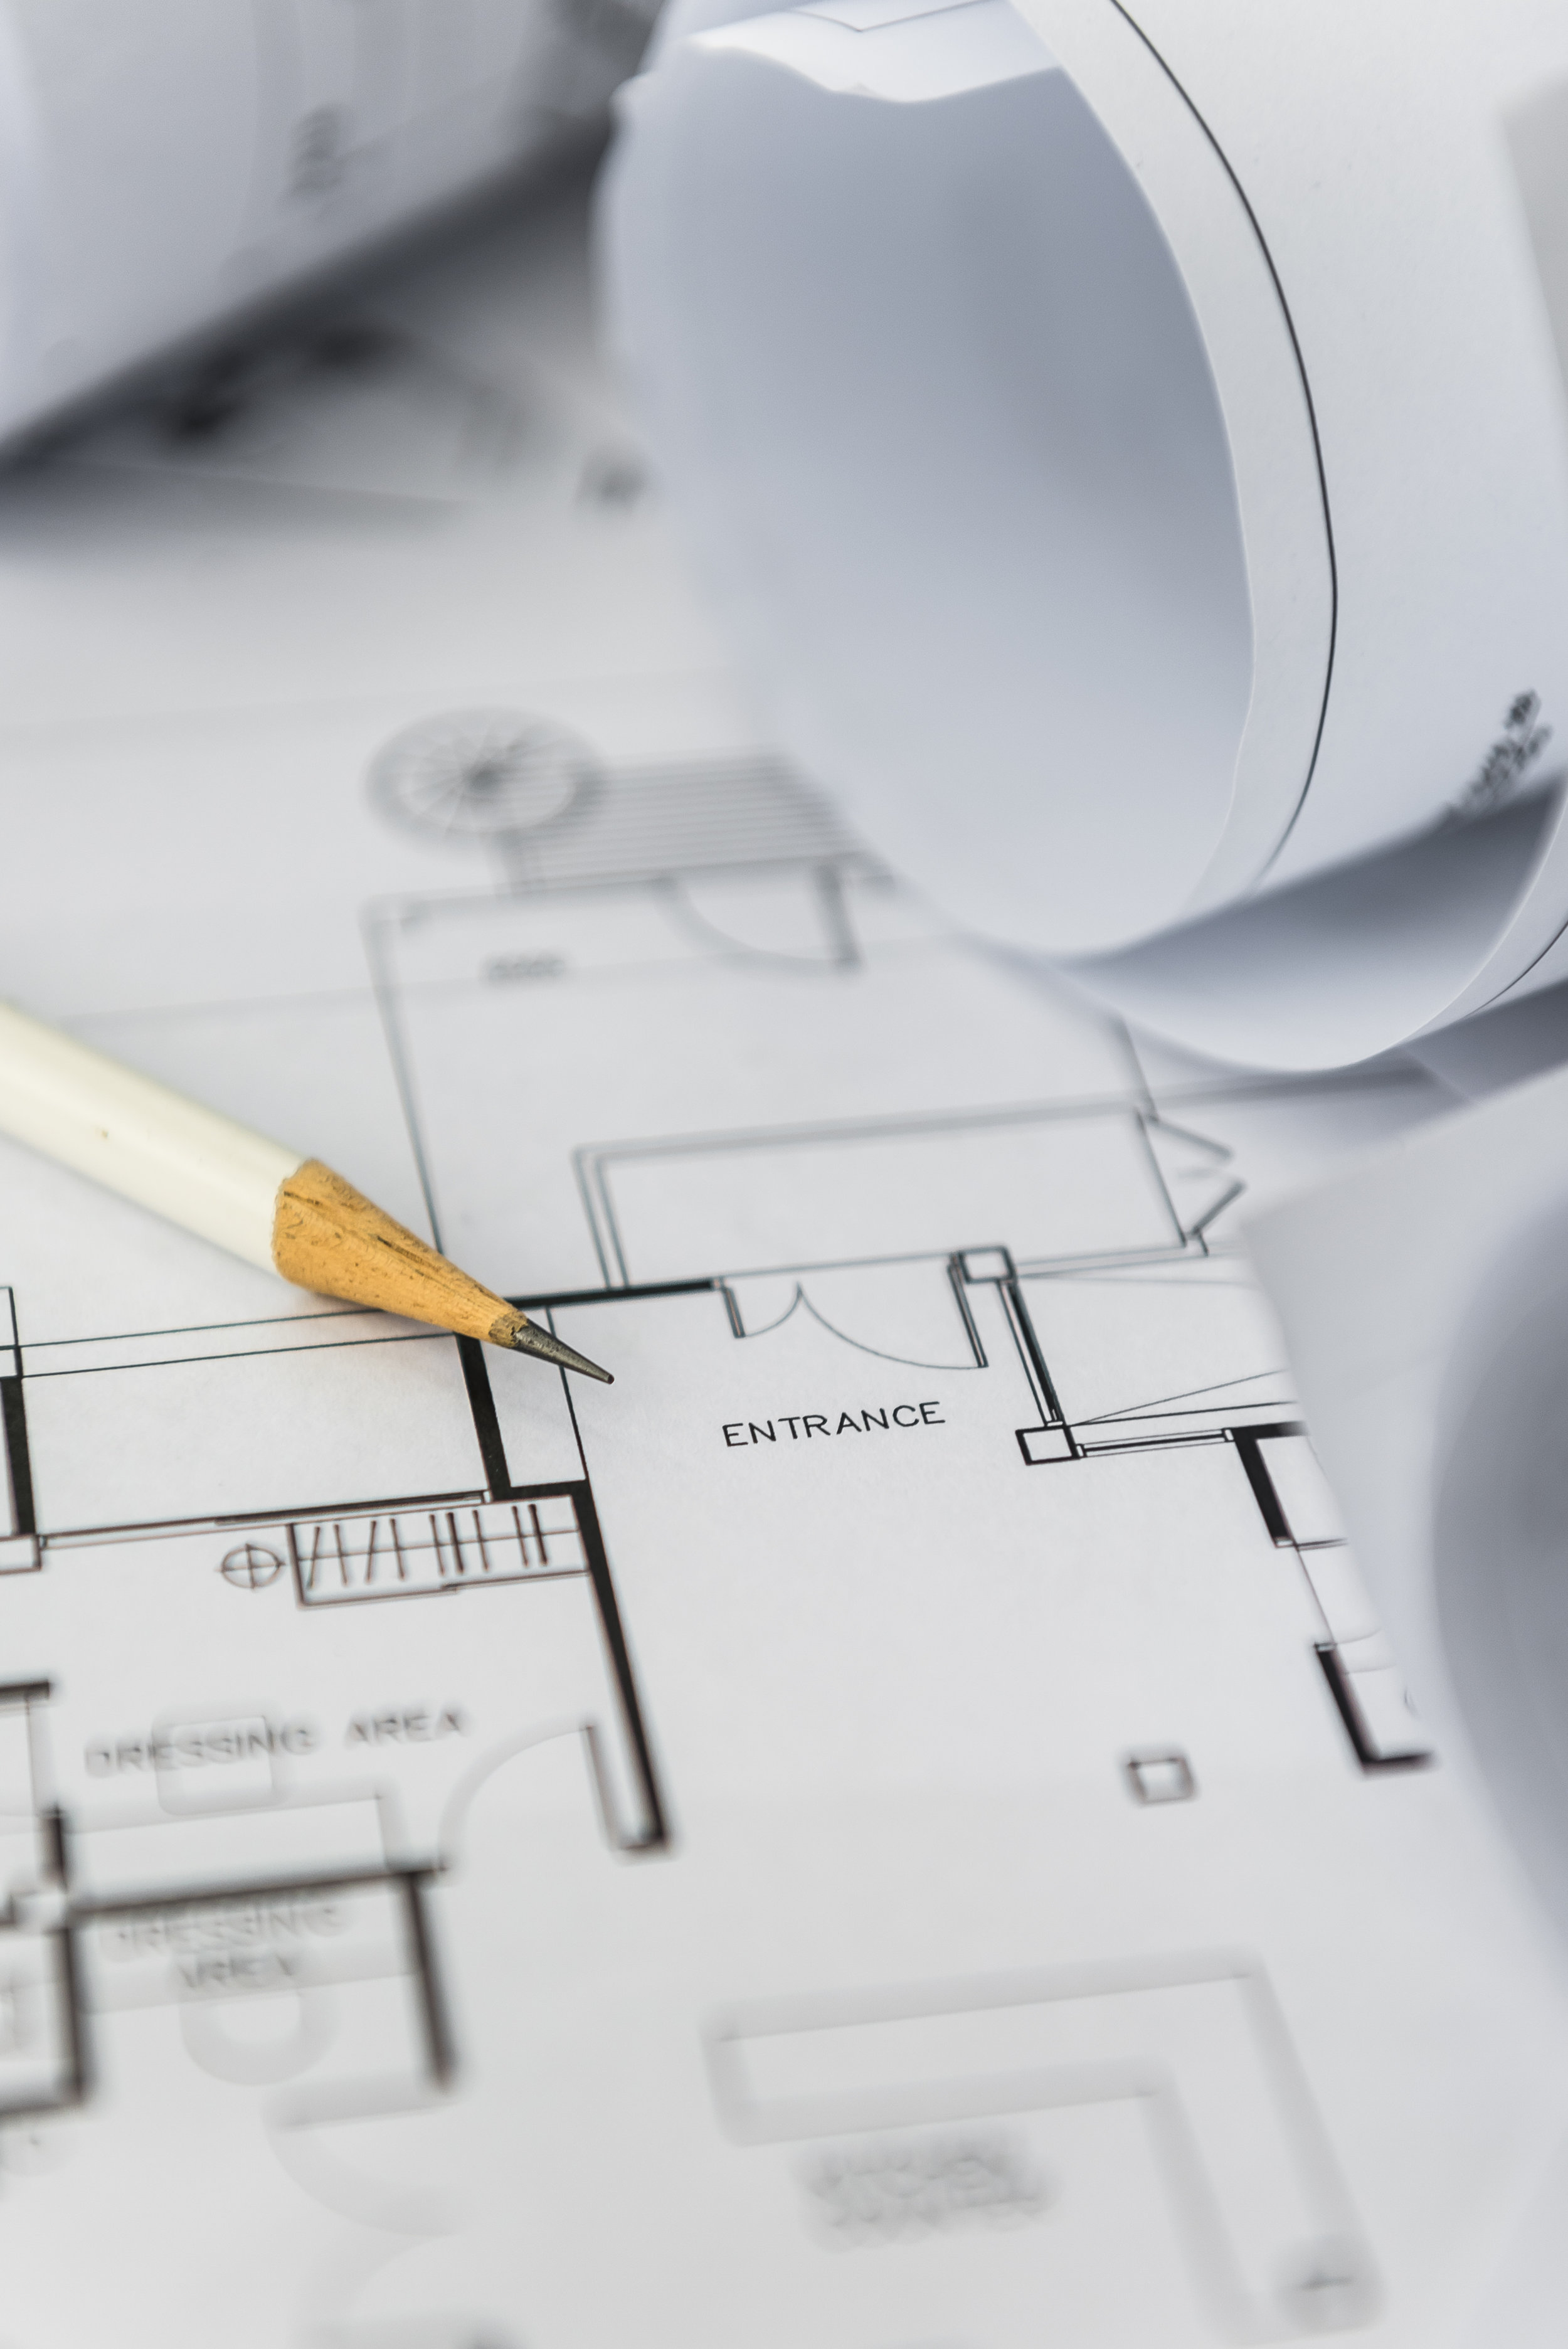 Our Mission - Our Mission is to provide outstanding Building Surveying services and to provide our clients with the expertise that will enable them make sense of their buildings and development proposals through a passionate, highly skilled and tailored approach.Learn More